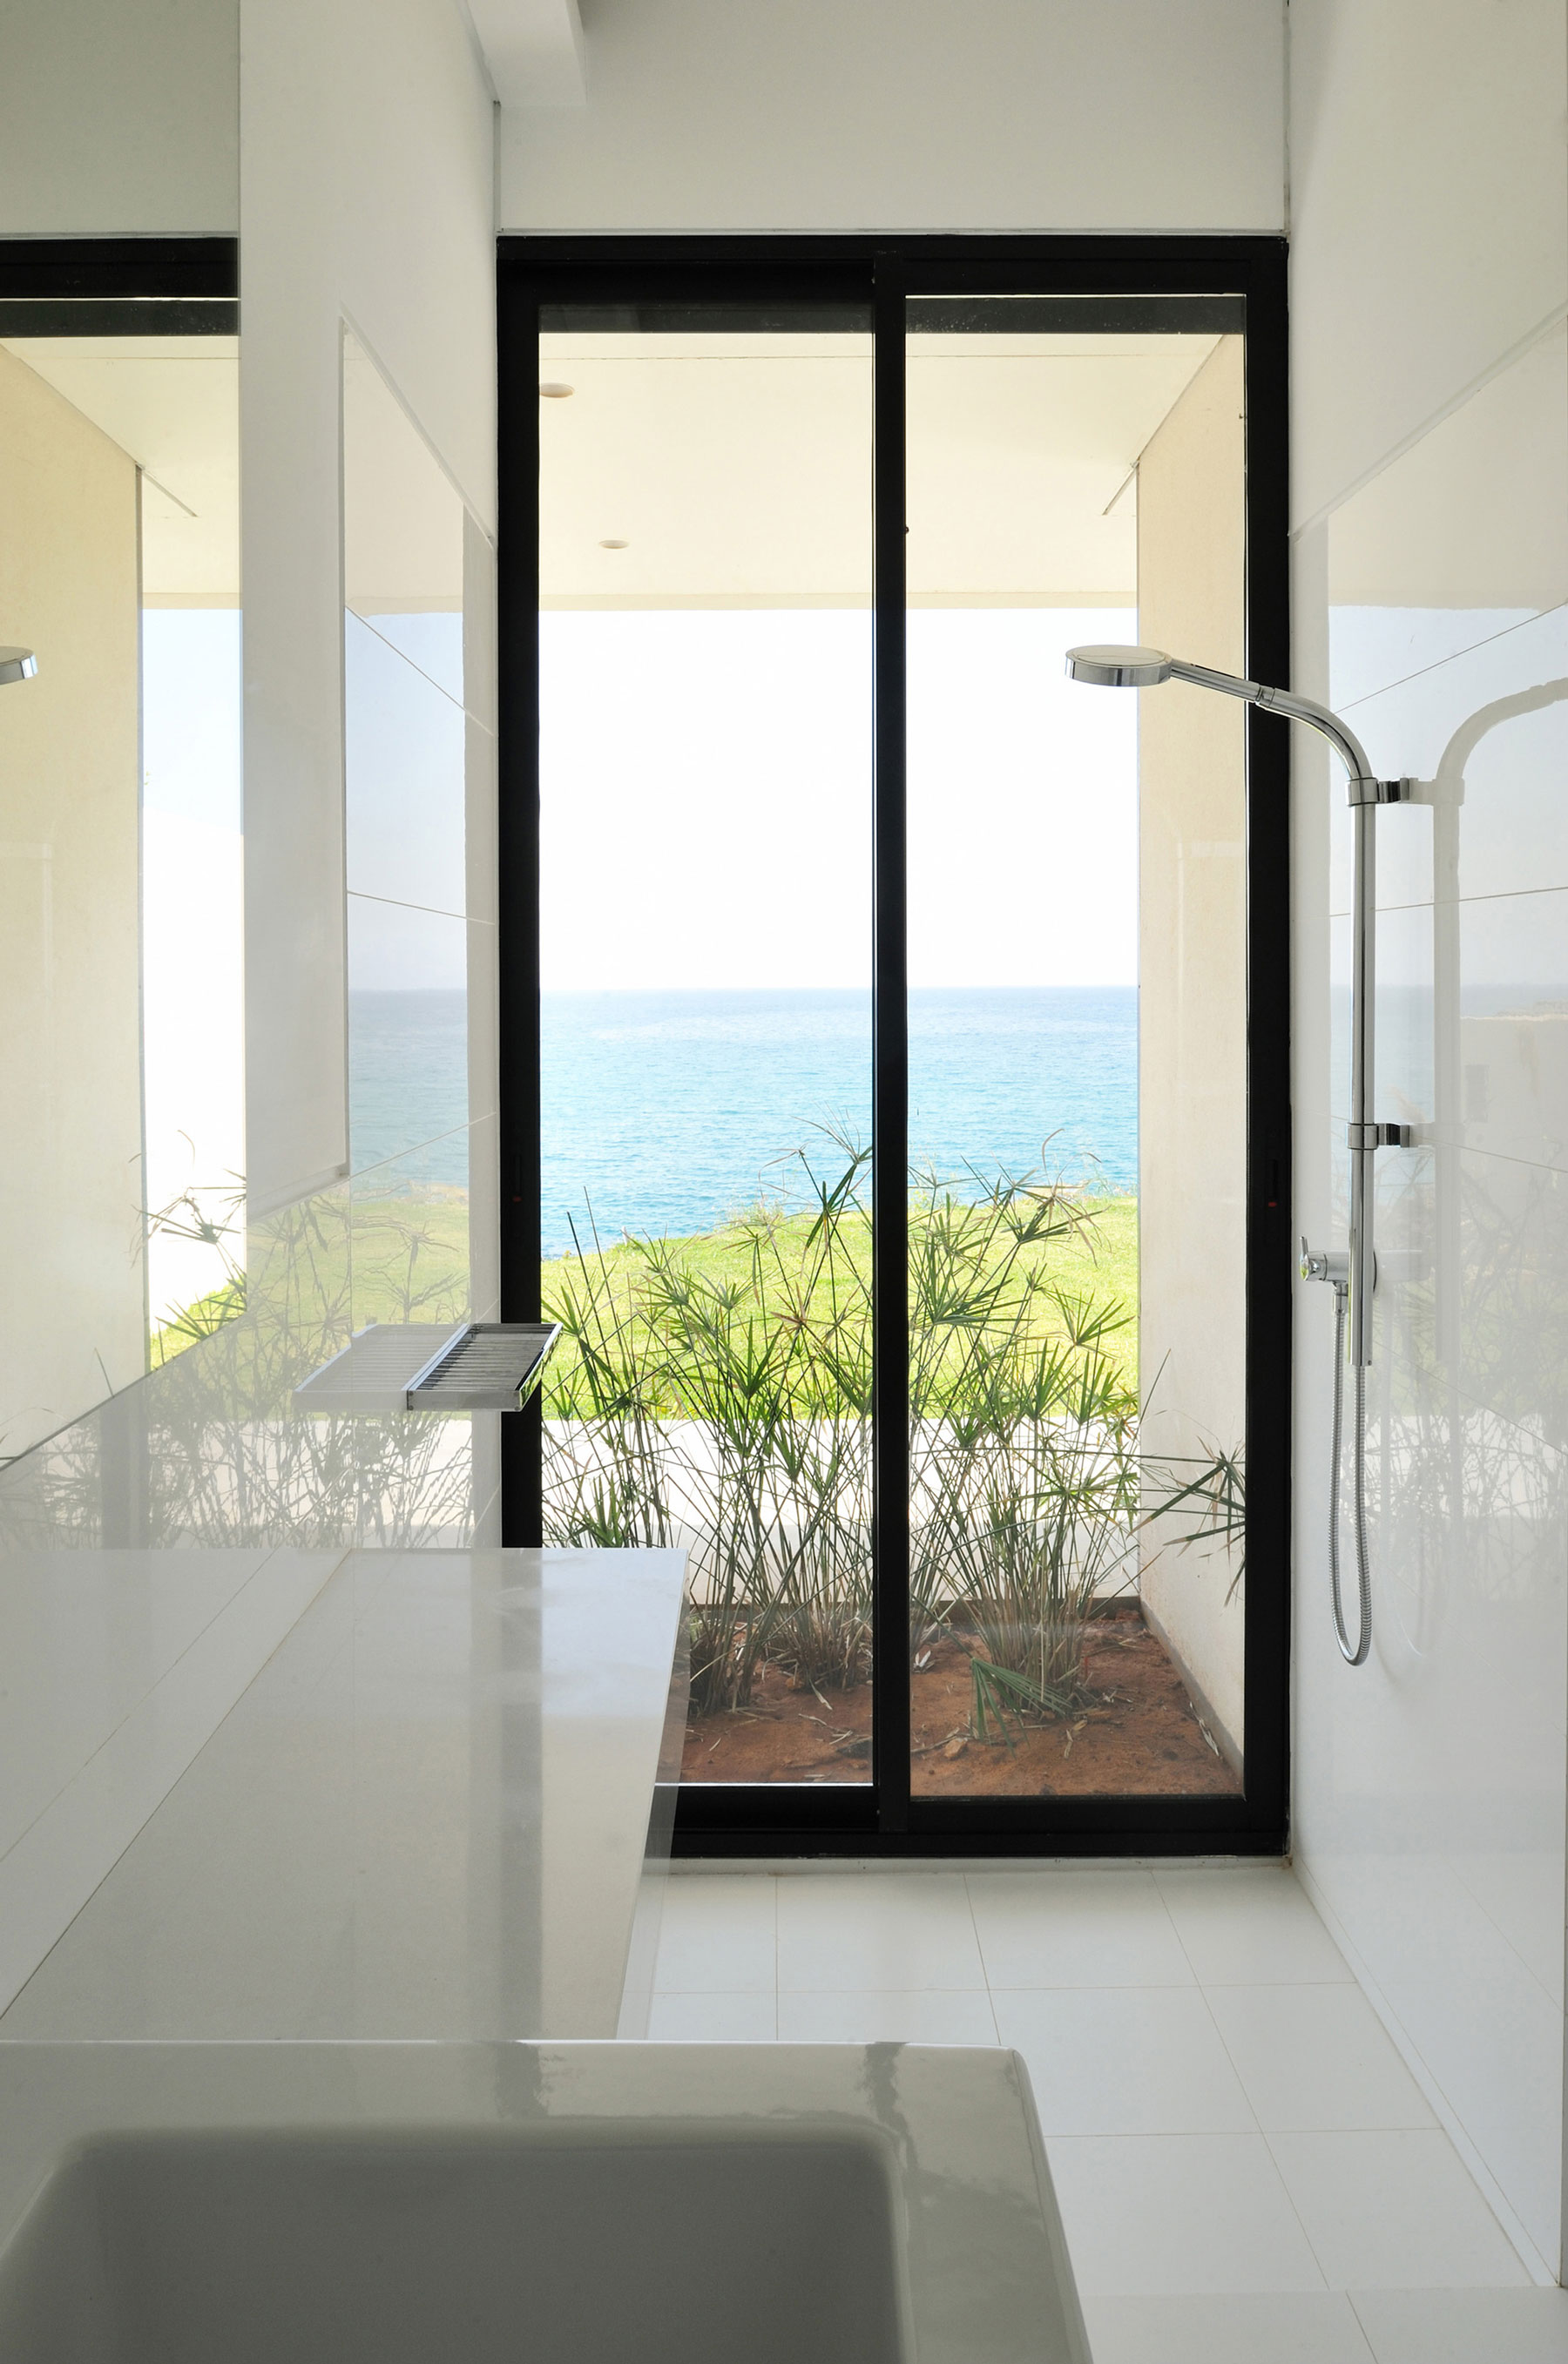 Futuristic modern beach house called fidar in lebanon for Bathroom designs lebanon